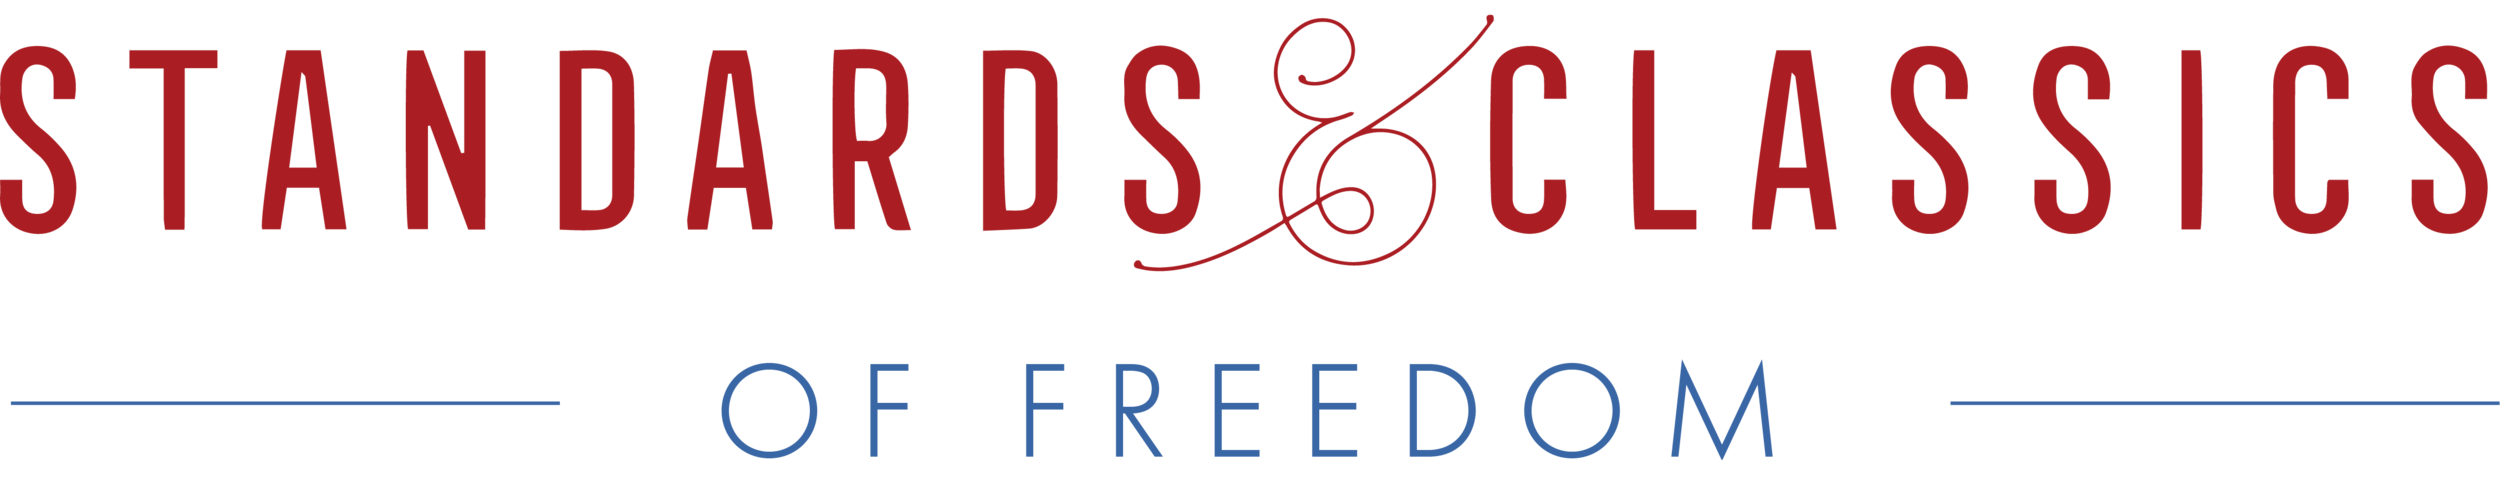 freedom-01.png